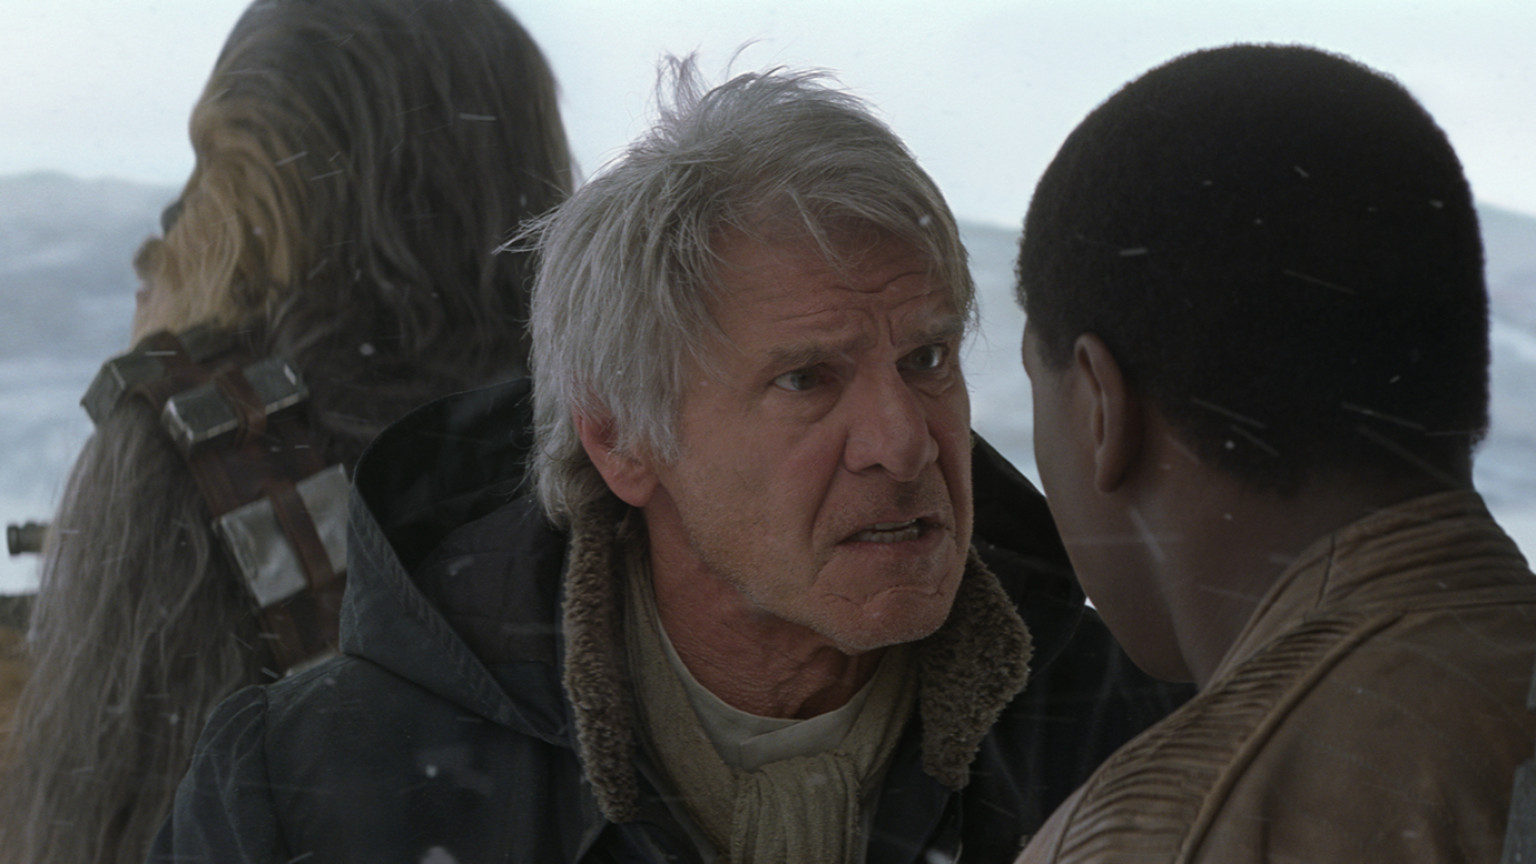 The Force Awakens - Chewbacca, Han, and Finn on Starkiller Base